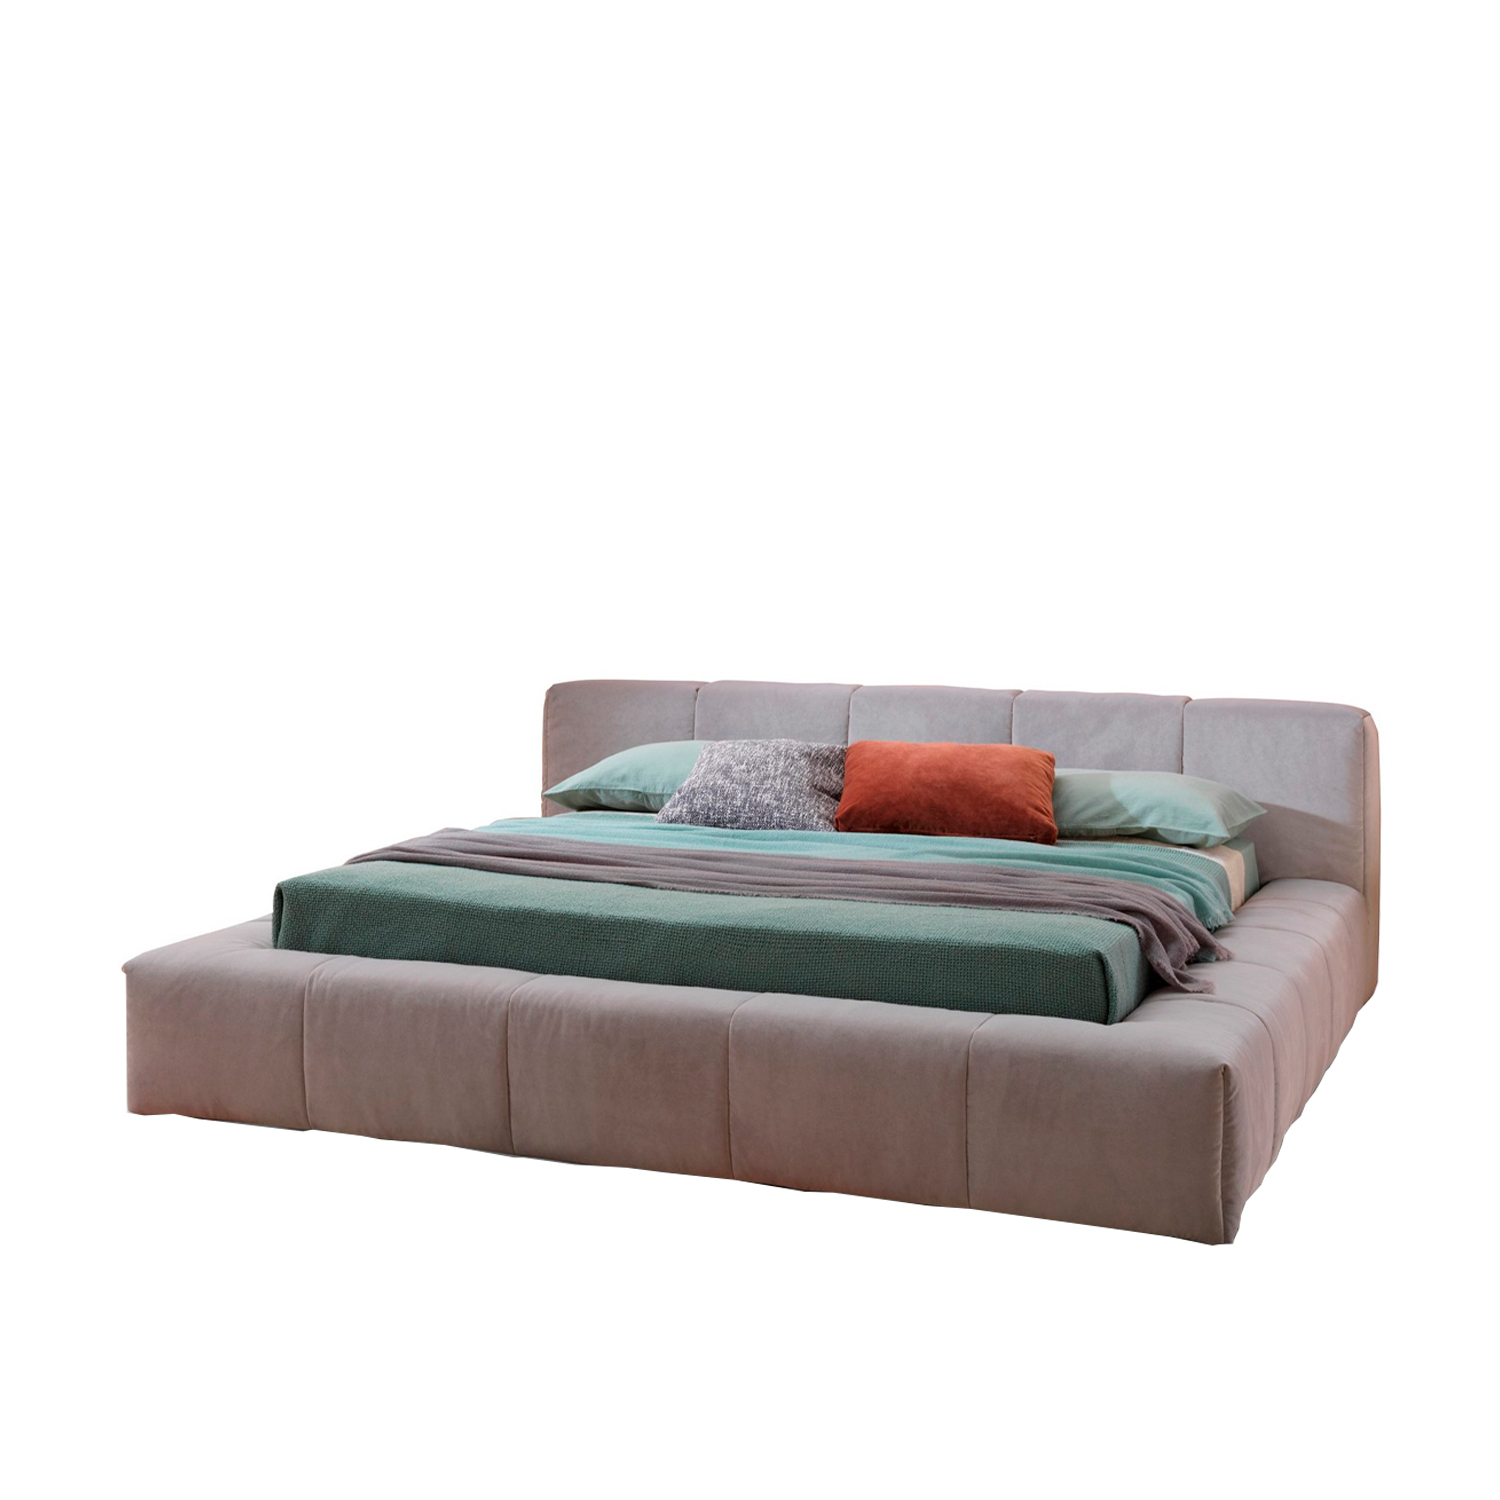 Pixel Box Large Bed - Pixel Box Large is the most voluminous option in the Pixel bed collection, completely enclosed by the soft and ample bed frame.‎ Pixel Box Large most evidently recalls the iconic and generous rounded shapes of Saba's Pixel sofa.‎